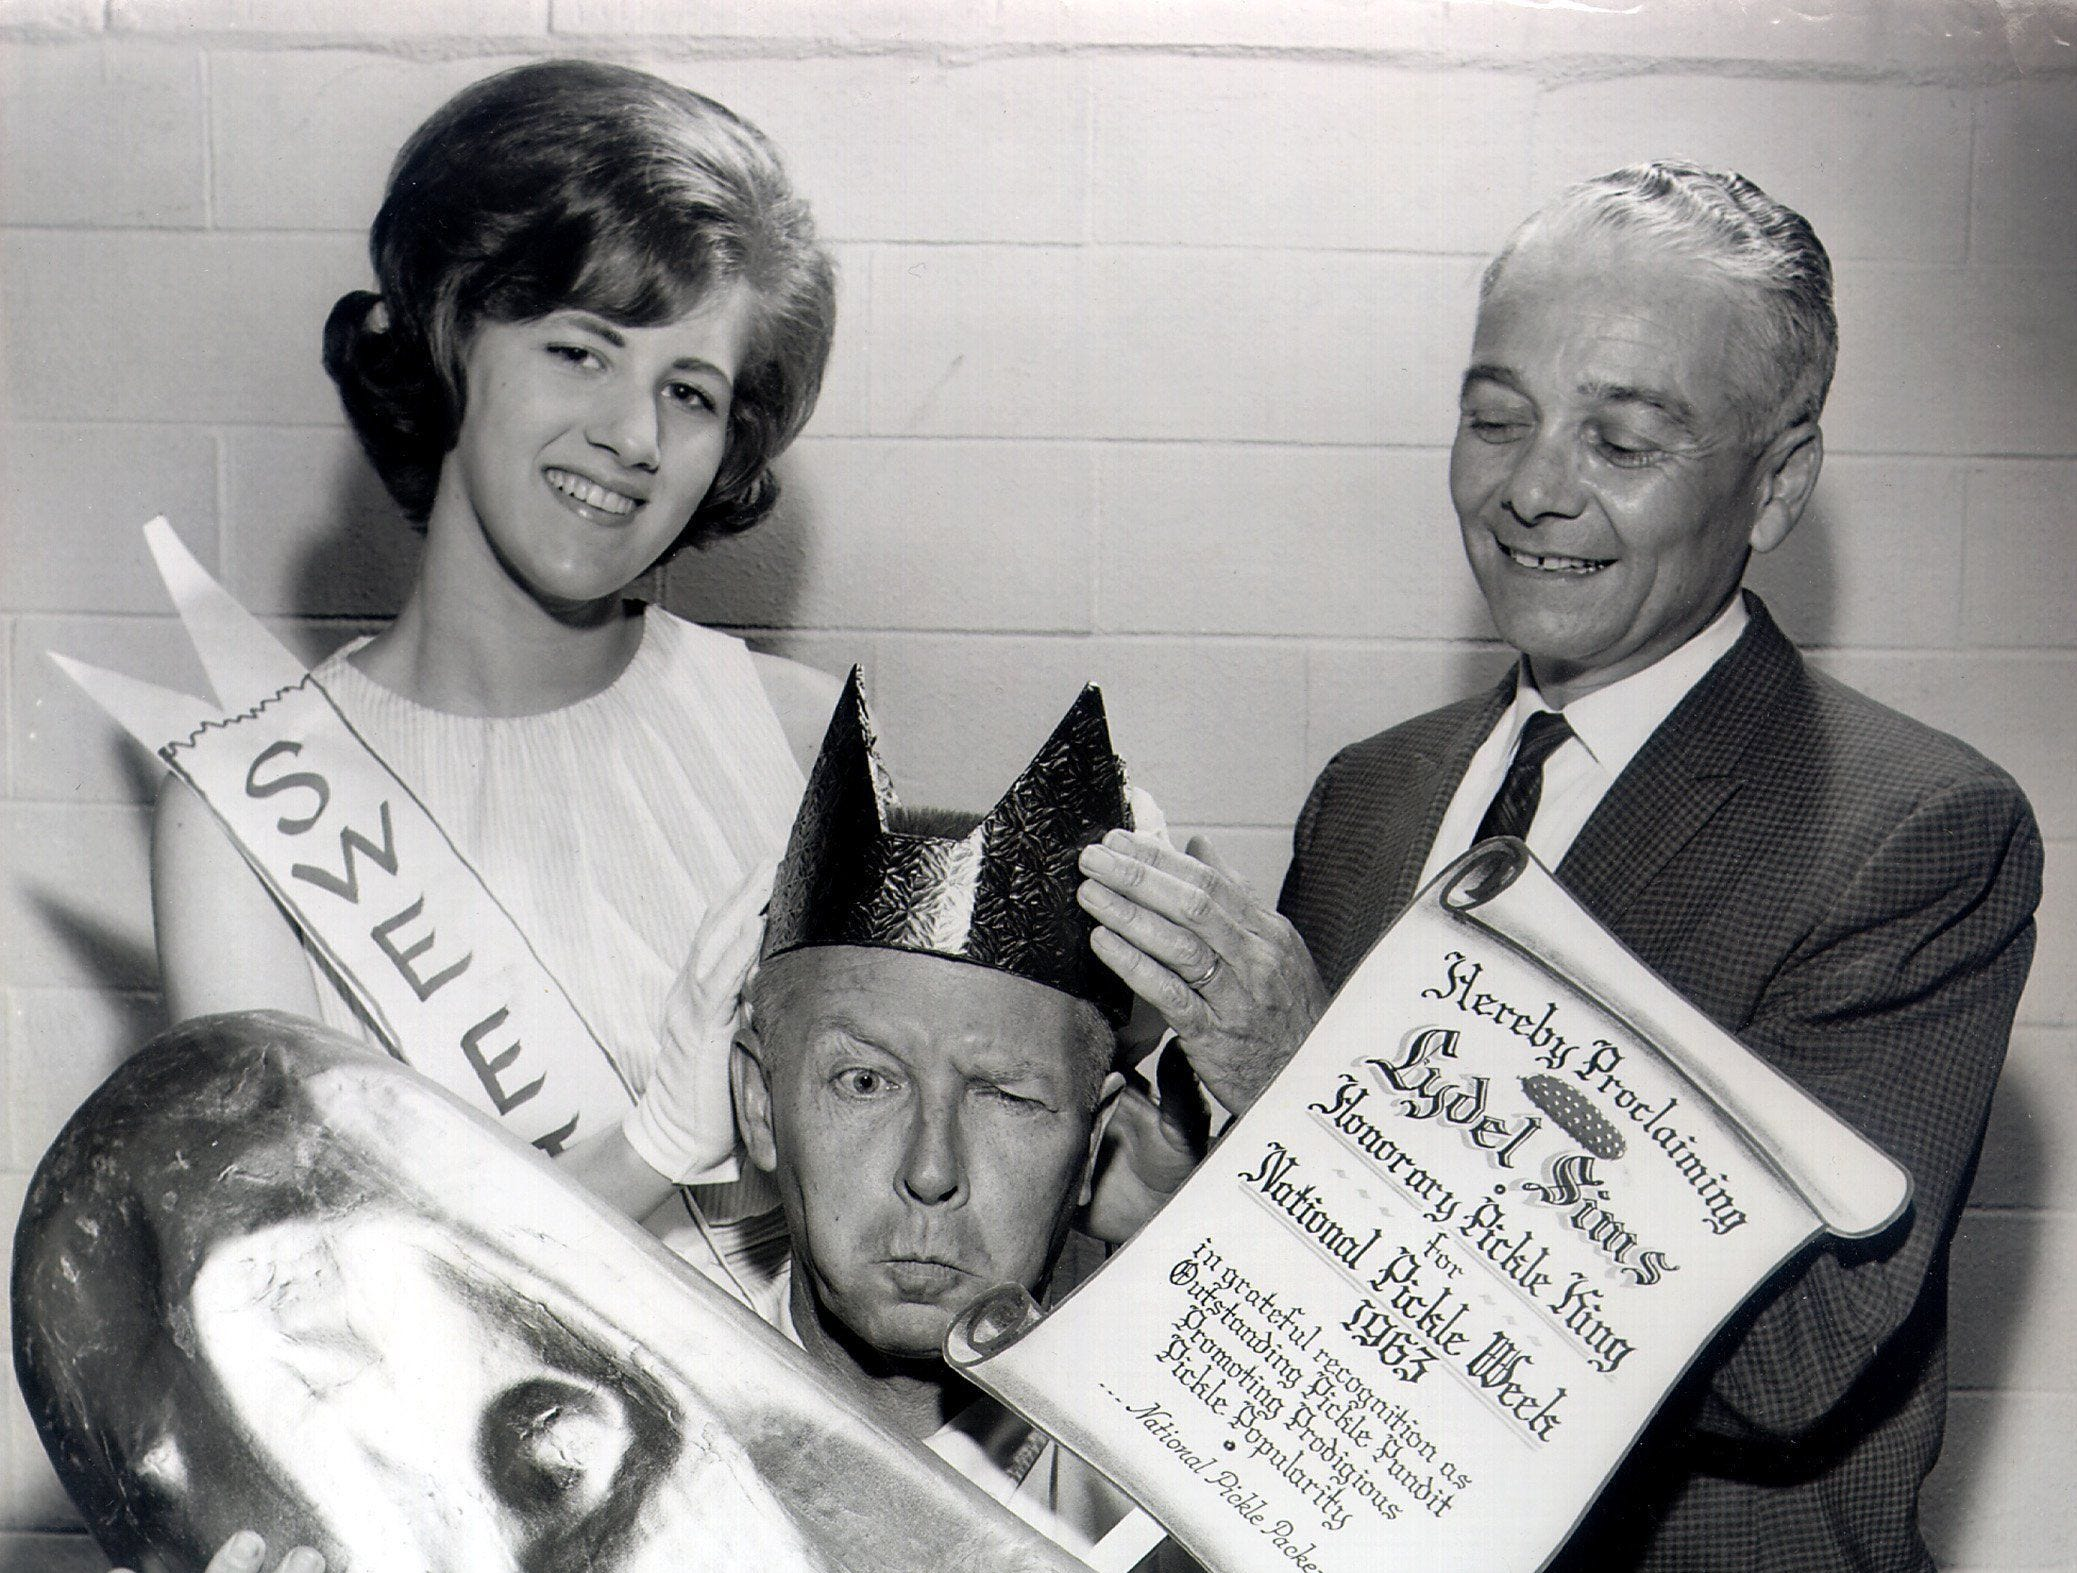 Columnist Lydel Sims (center) of The Commercial Appeal is named Honorary Pickle King for National Pickle Week in 1963 by Berny Messinger (right). Benita Blackman looks on during the April 1963 coronation.